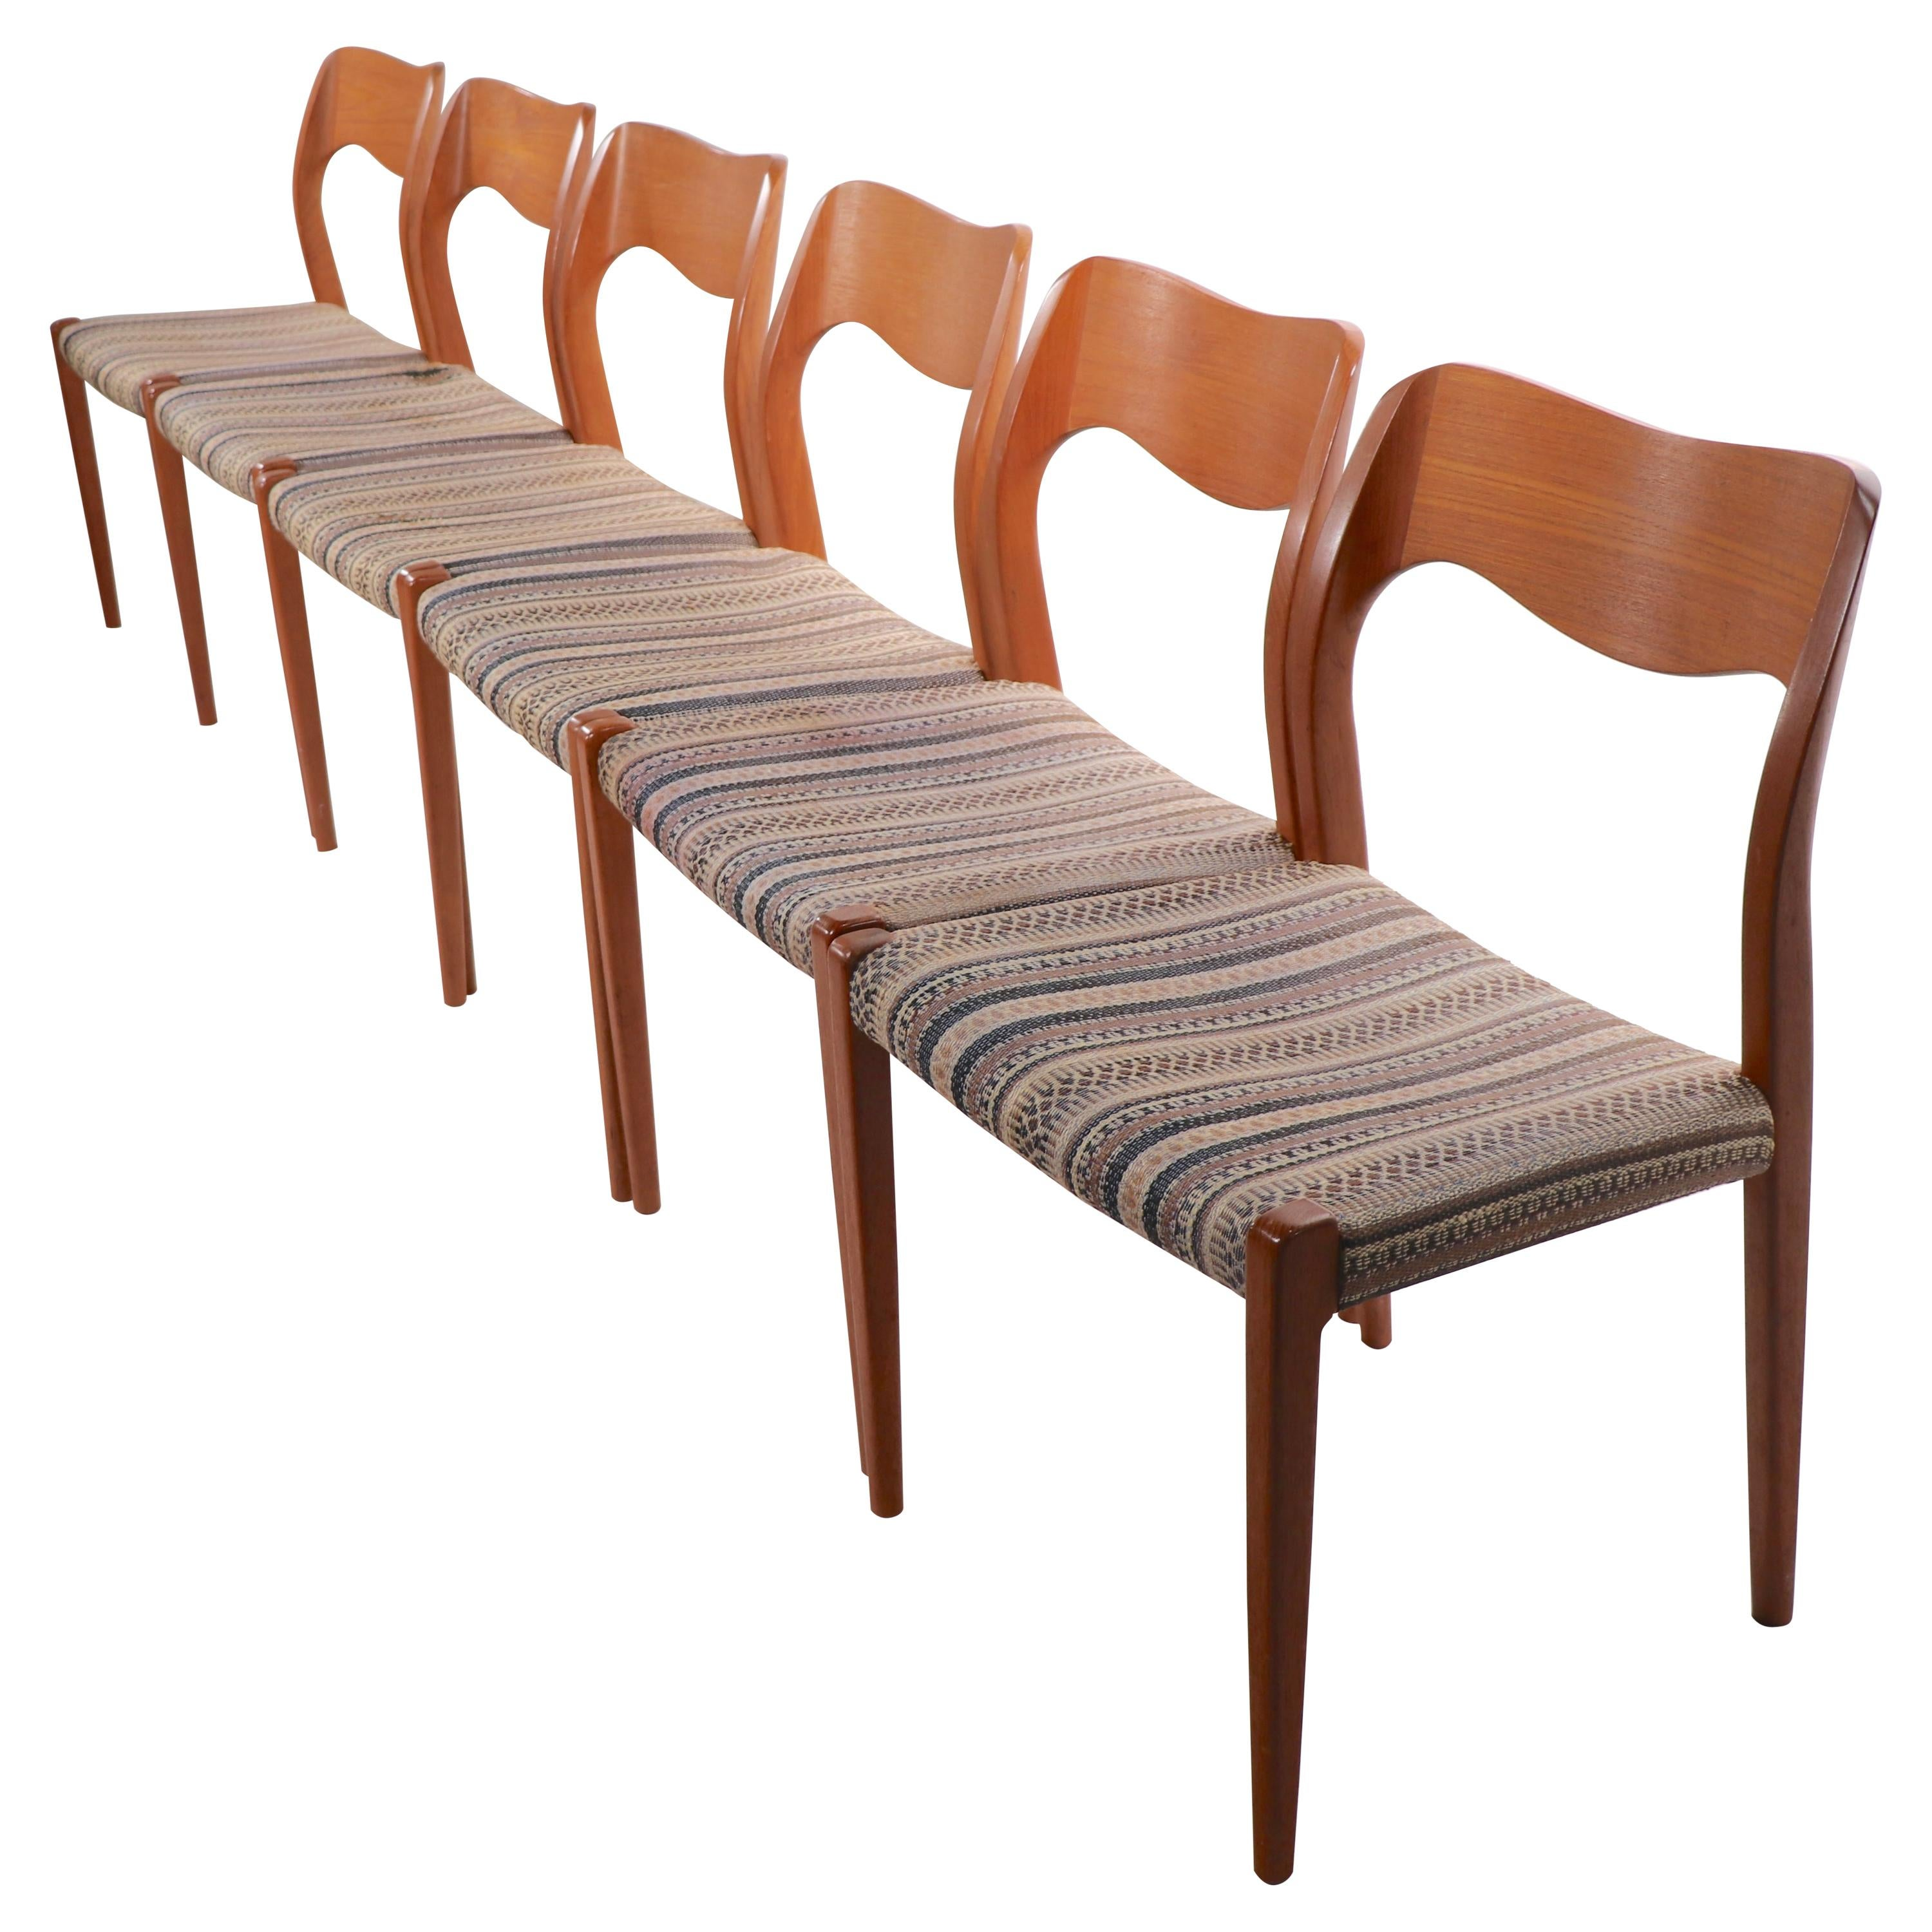 Set of Six Niels Moller Design Dinging Chairs Model 71 by J.L. Mollers Denmark